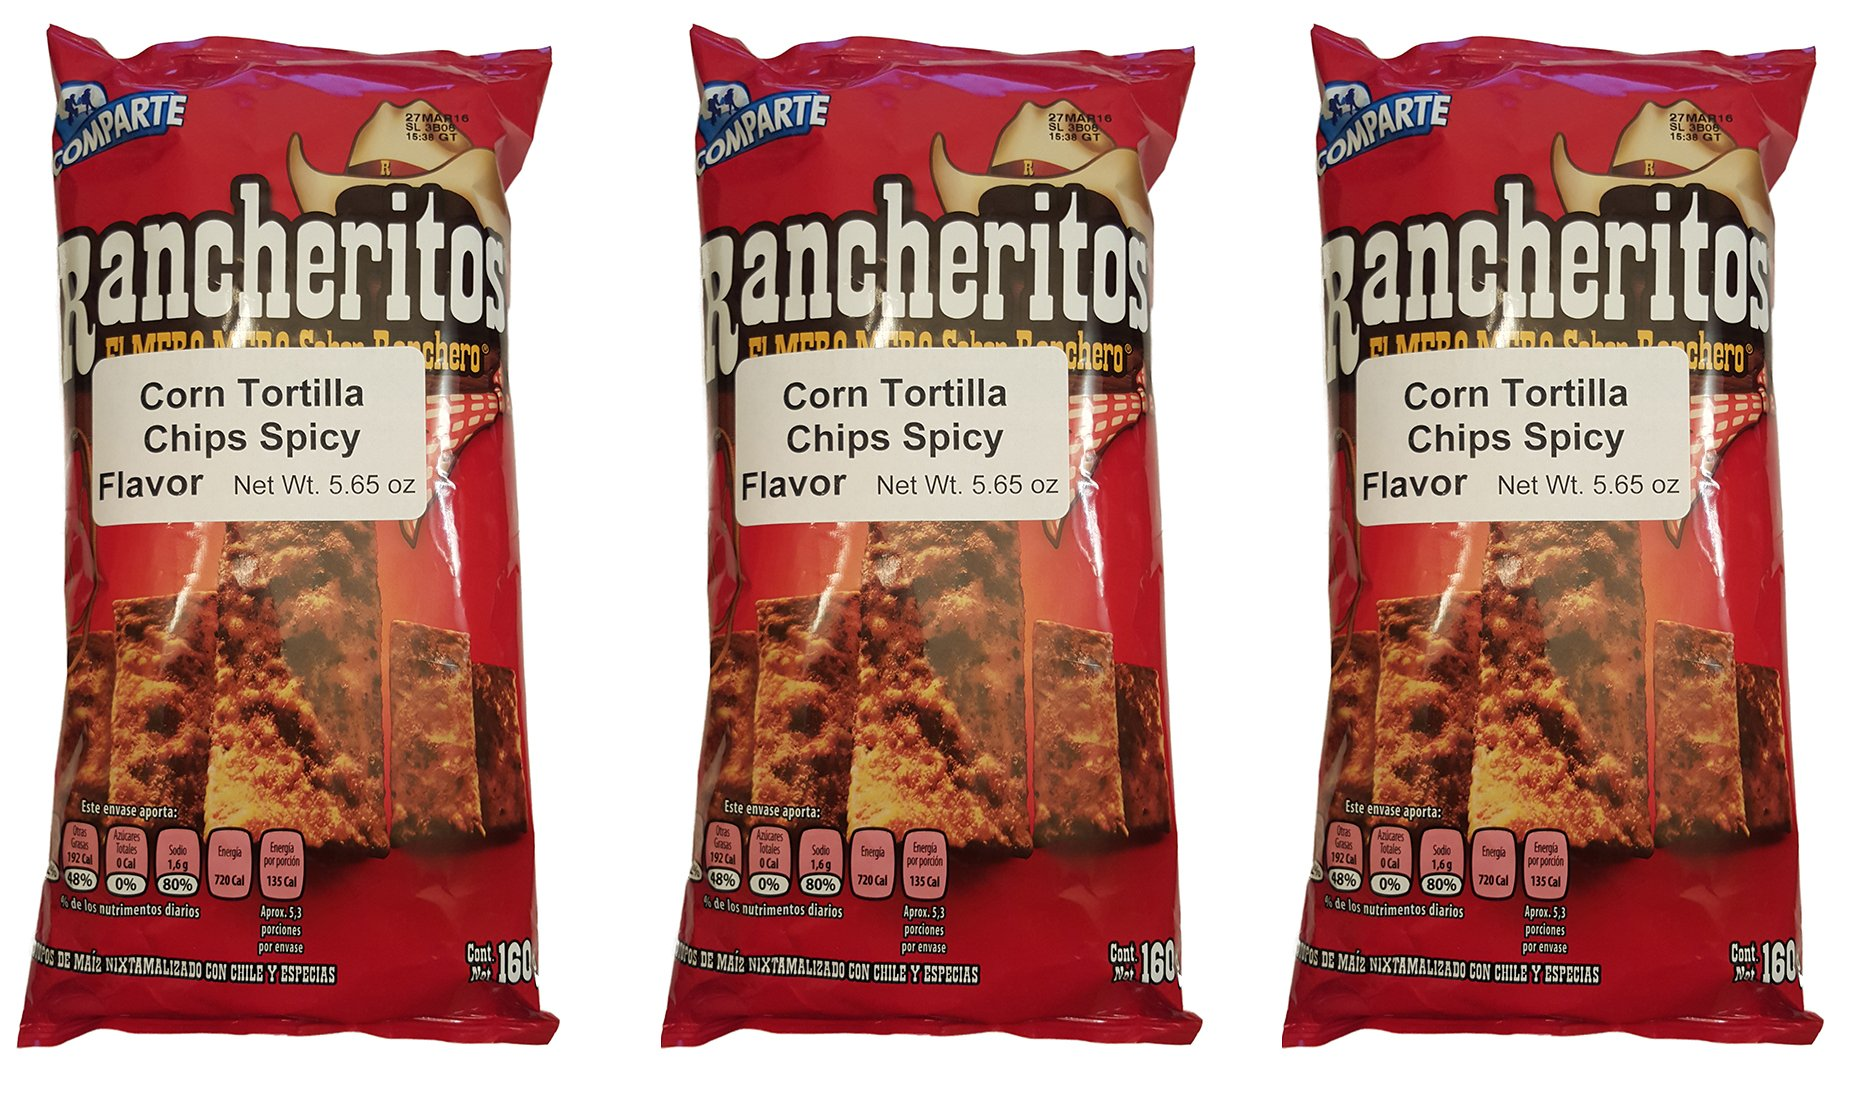 Sabritas Mexican Chips Large Bag (3-pack) (Botanas Mexicanas Bolsa Grande)